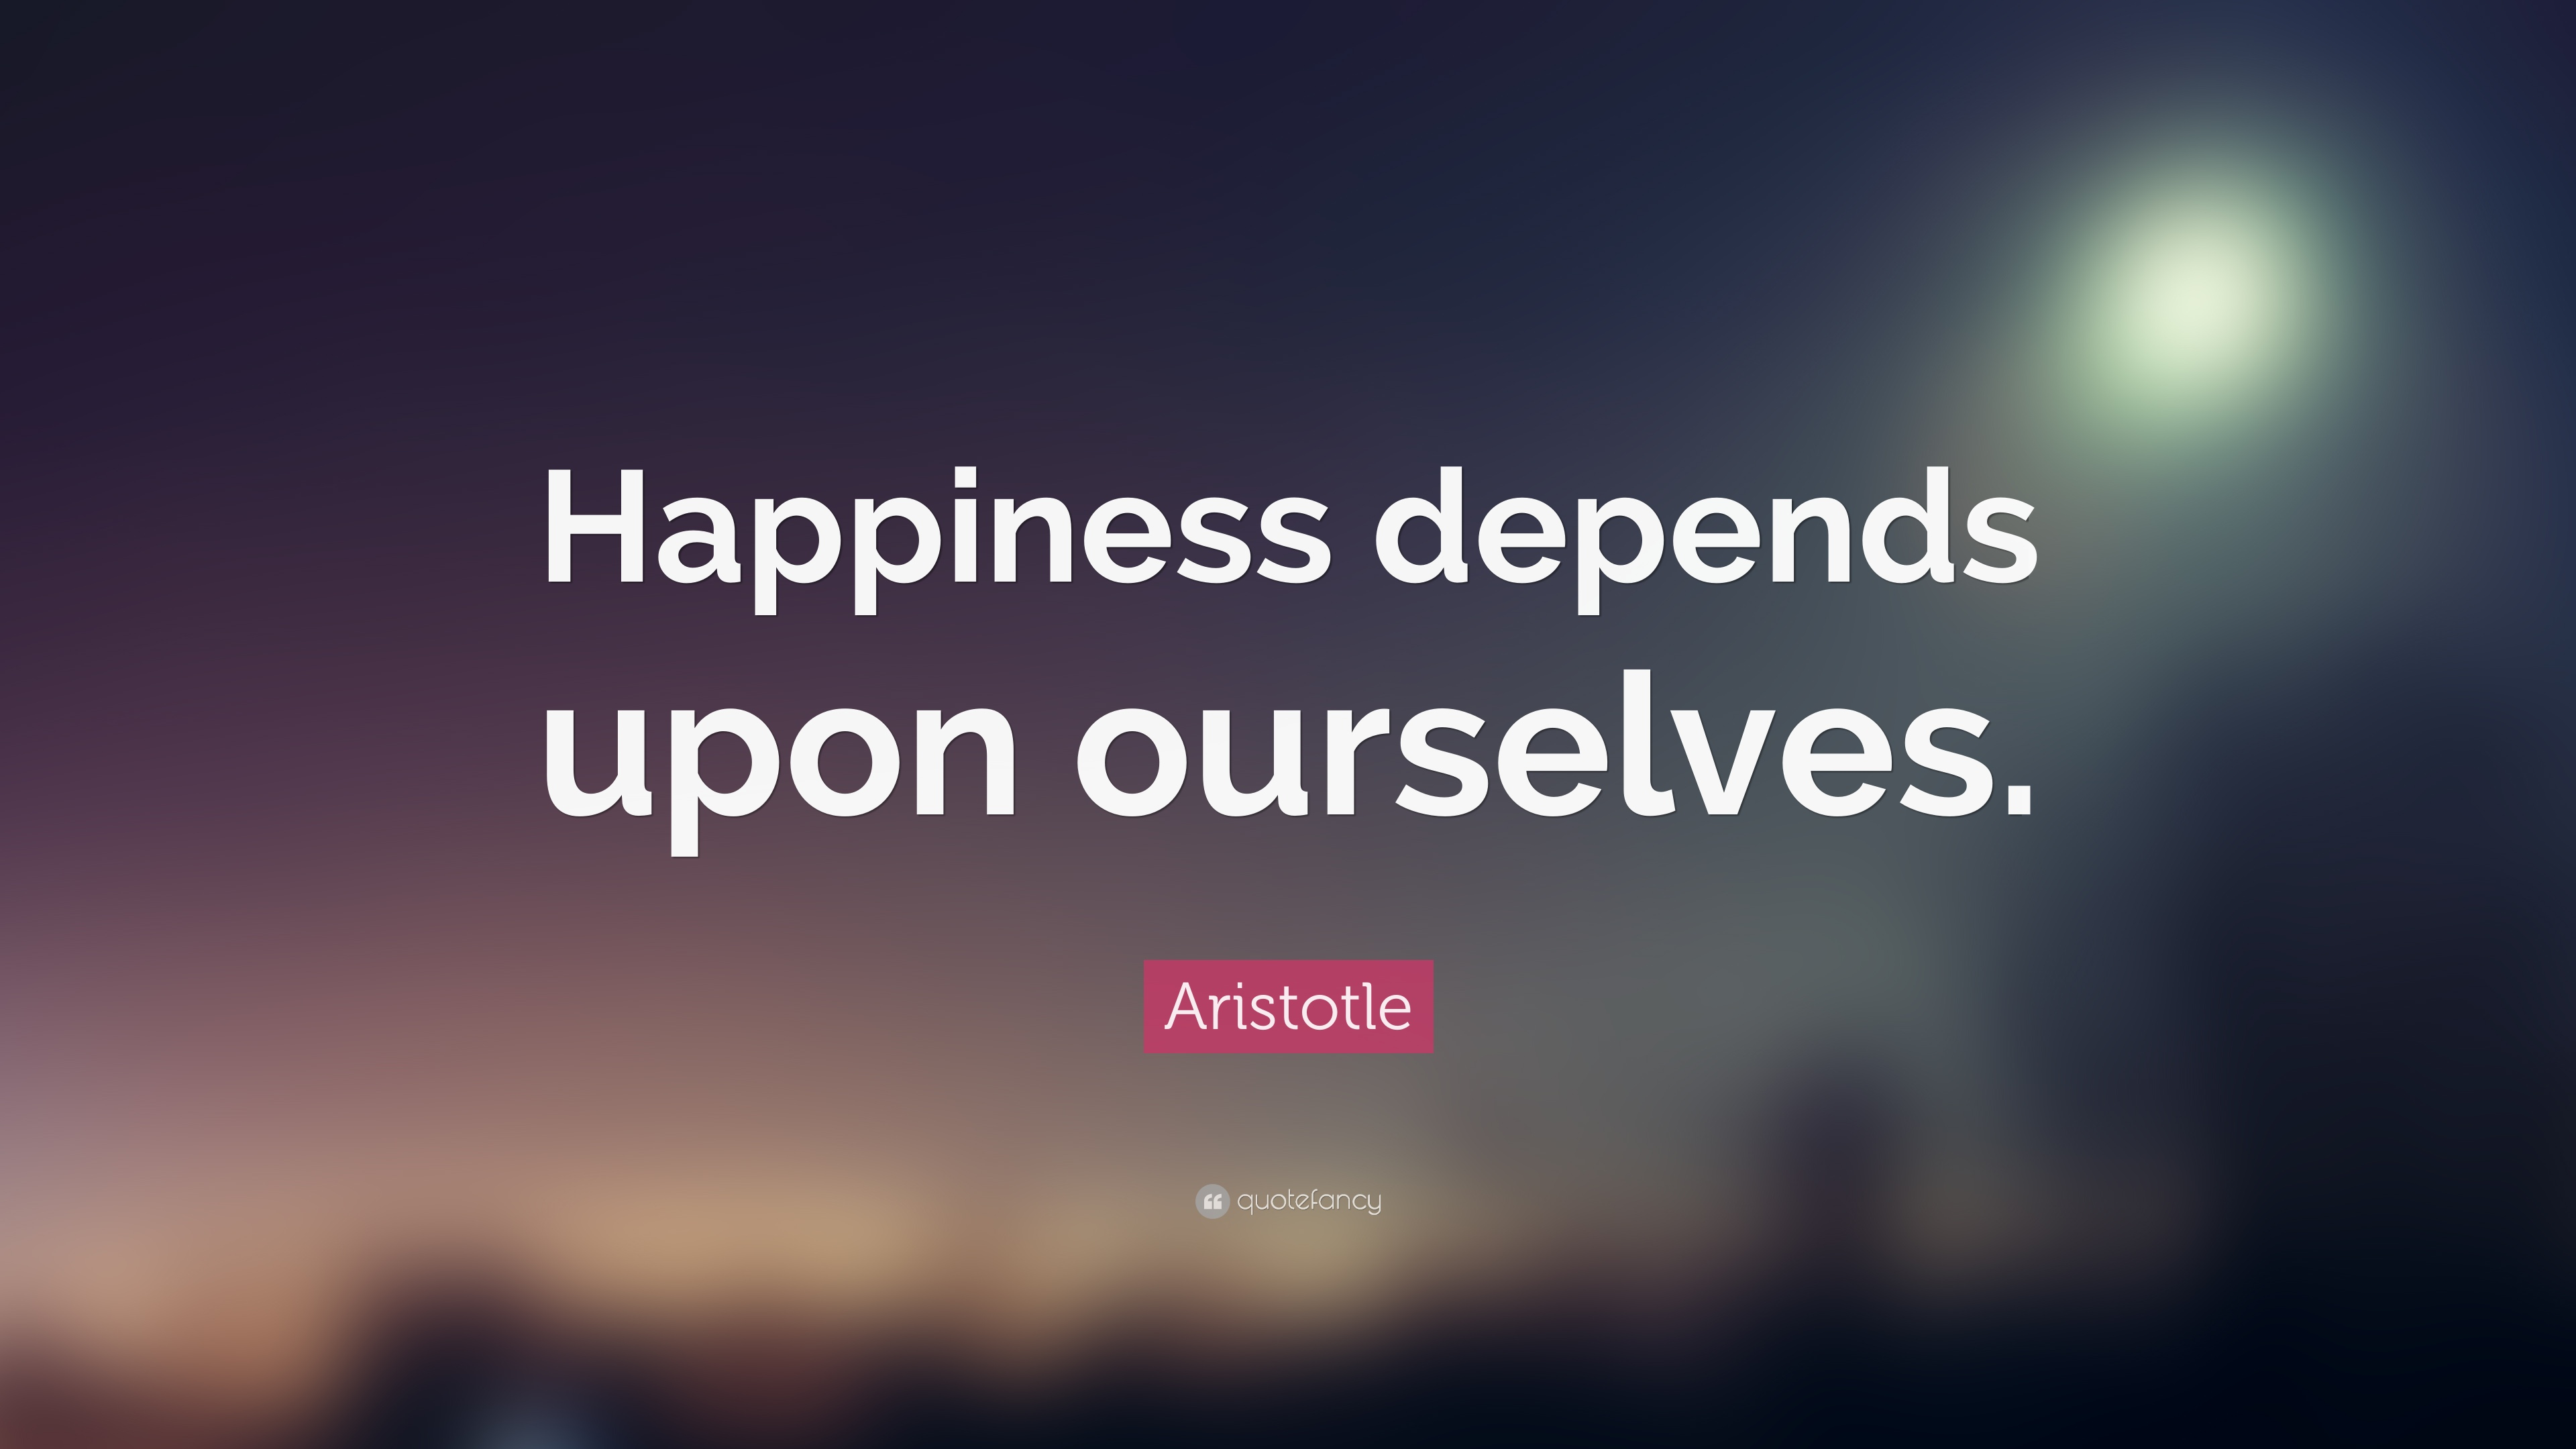 aristotle on happiness Plato's response to glaucon's challenge [00:05:57] jonathan haidt's two  principles of happiness [00:28:57] aristotle on happiness and teleology [00:34: 54.